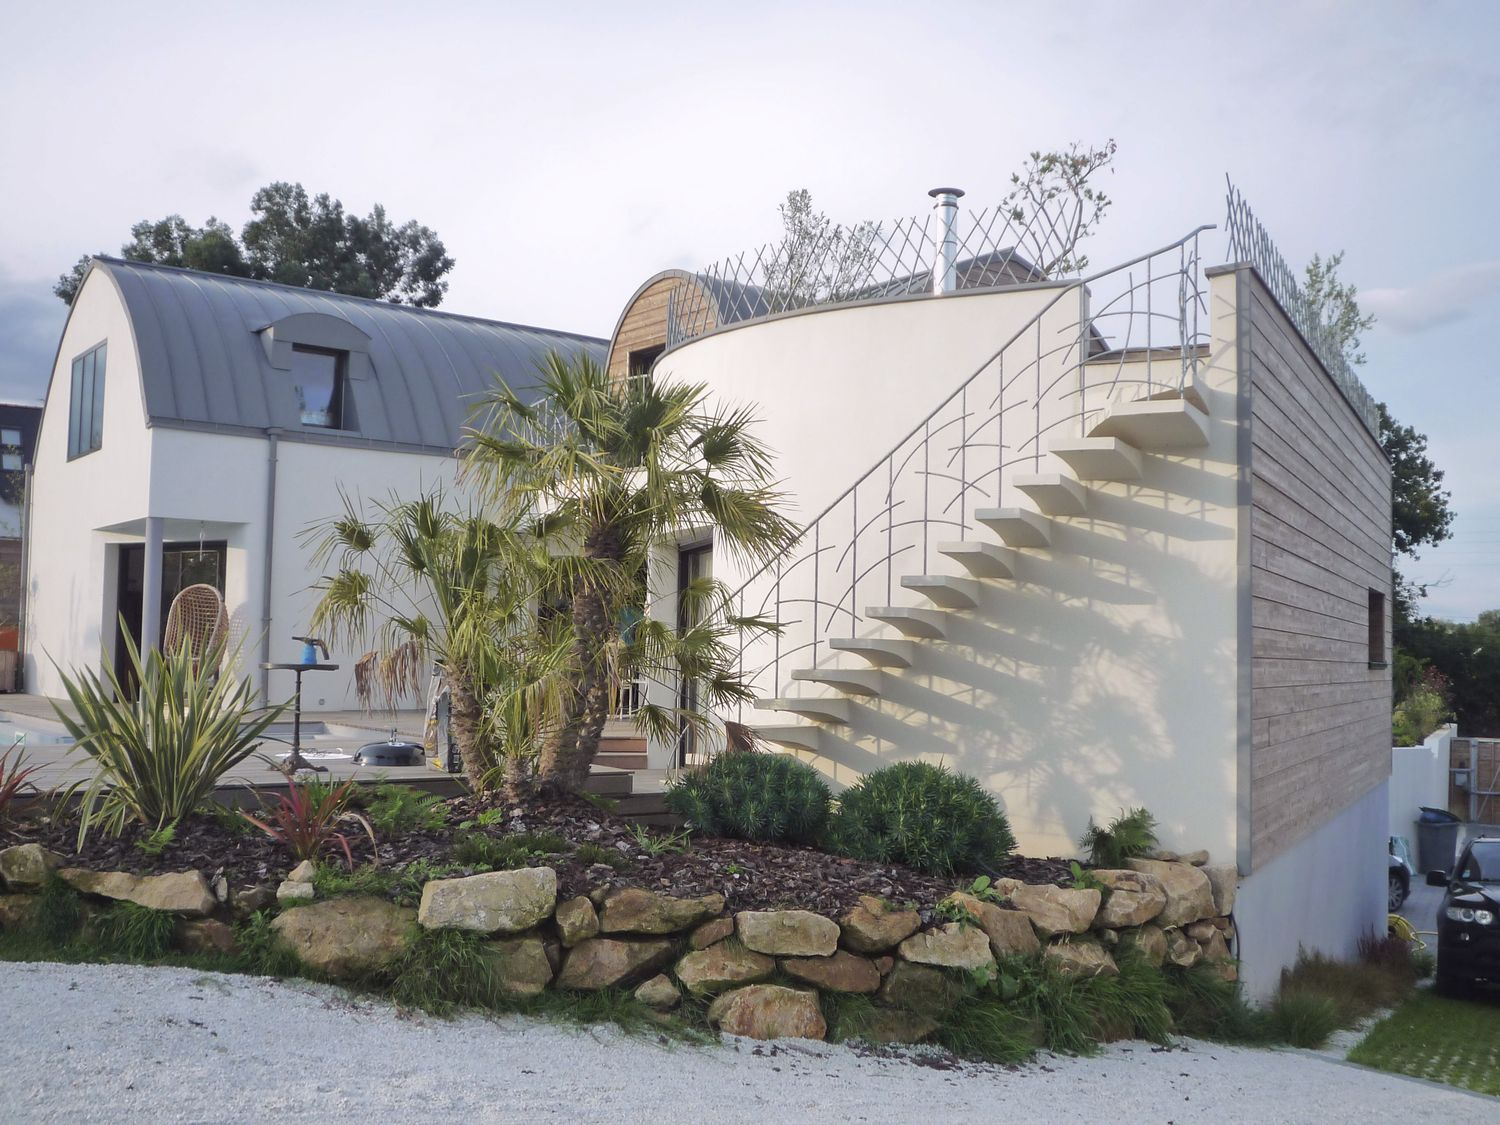 Villa-contemporaine-toiture-zinc-Architecte-à-Vannes-2